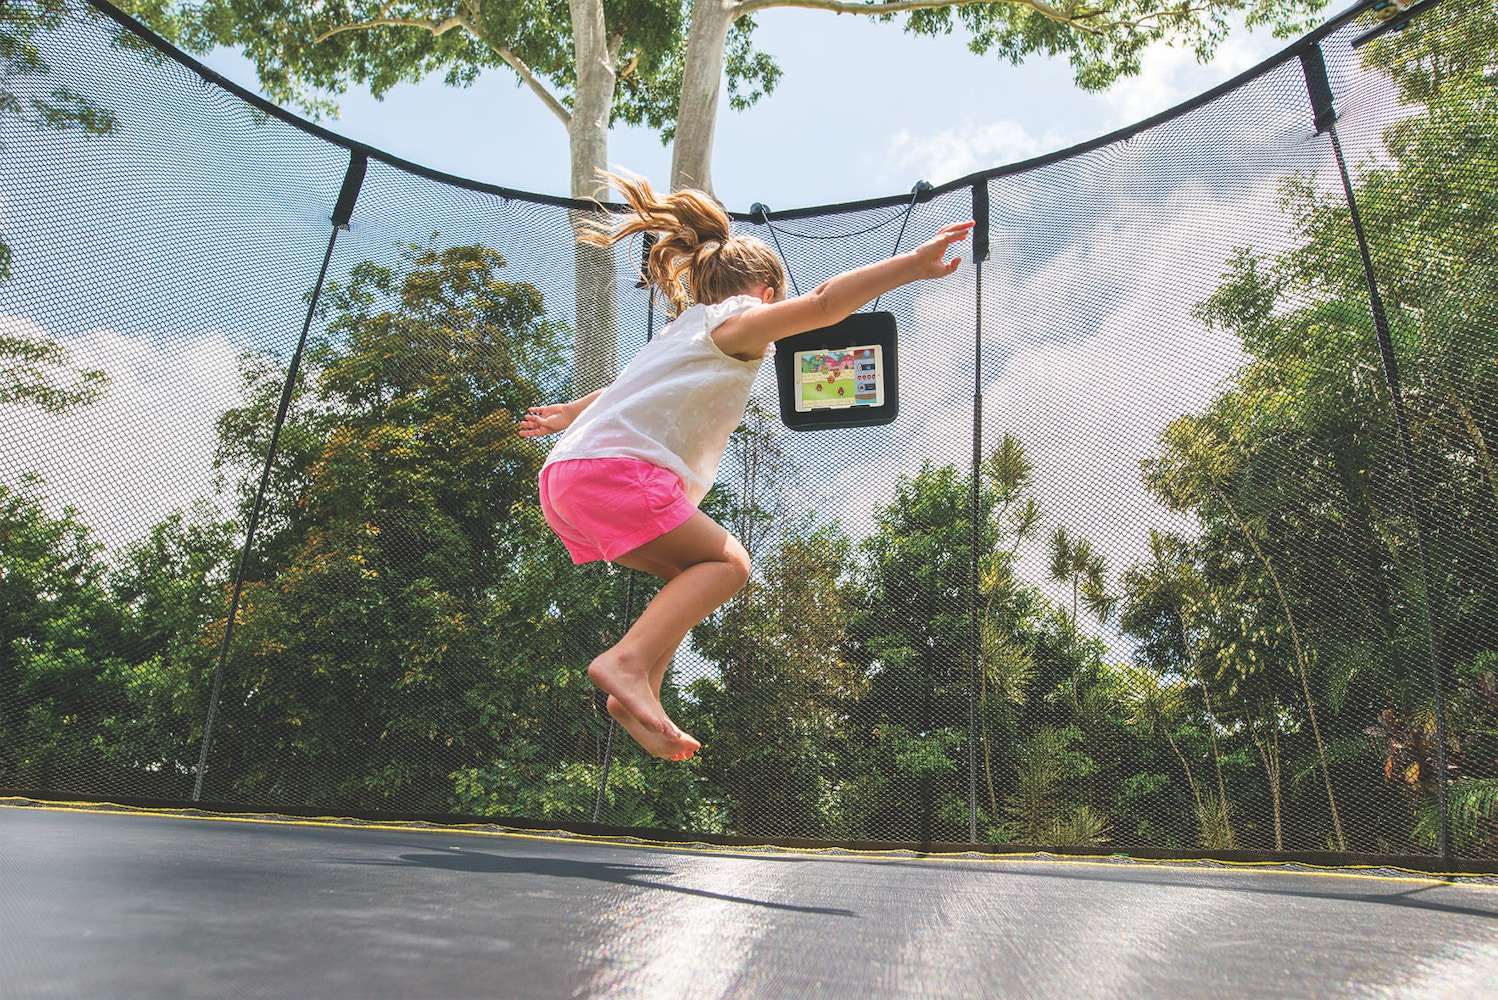 Springfree Smart Trampoline Review